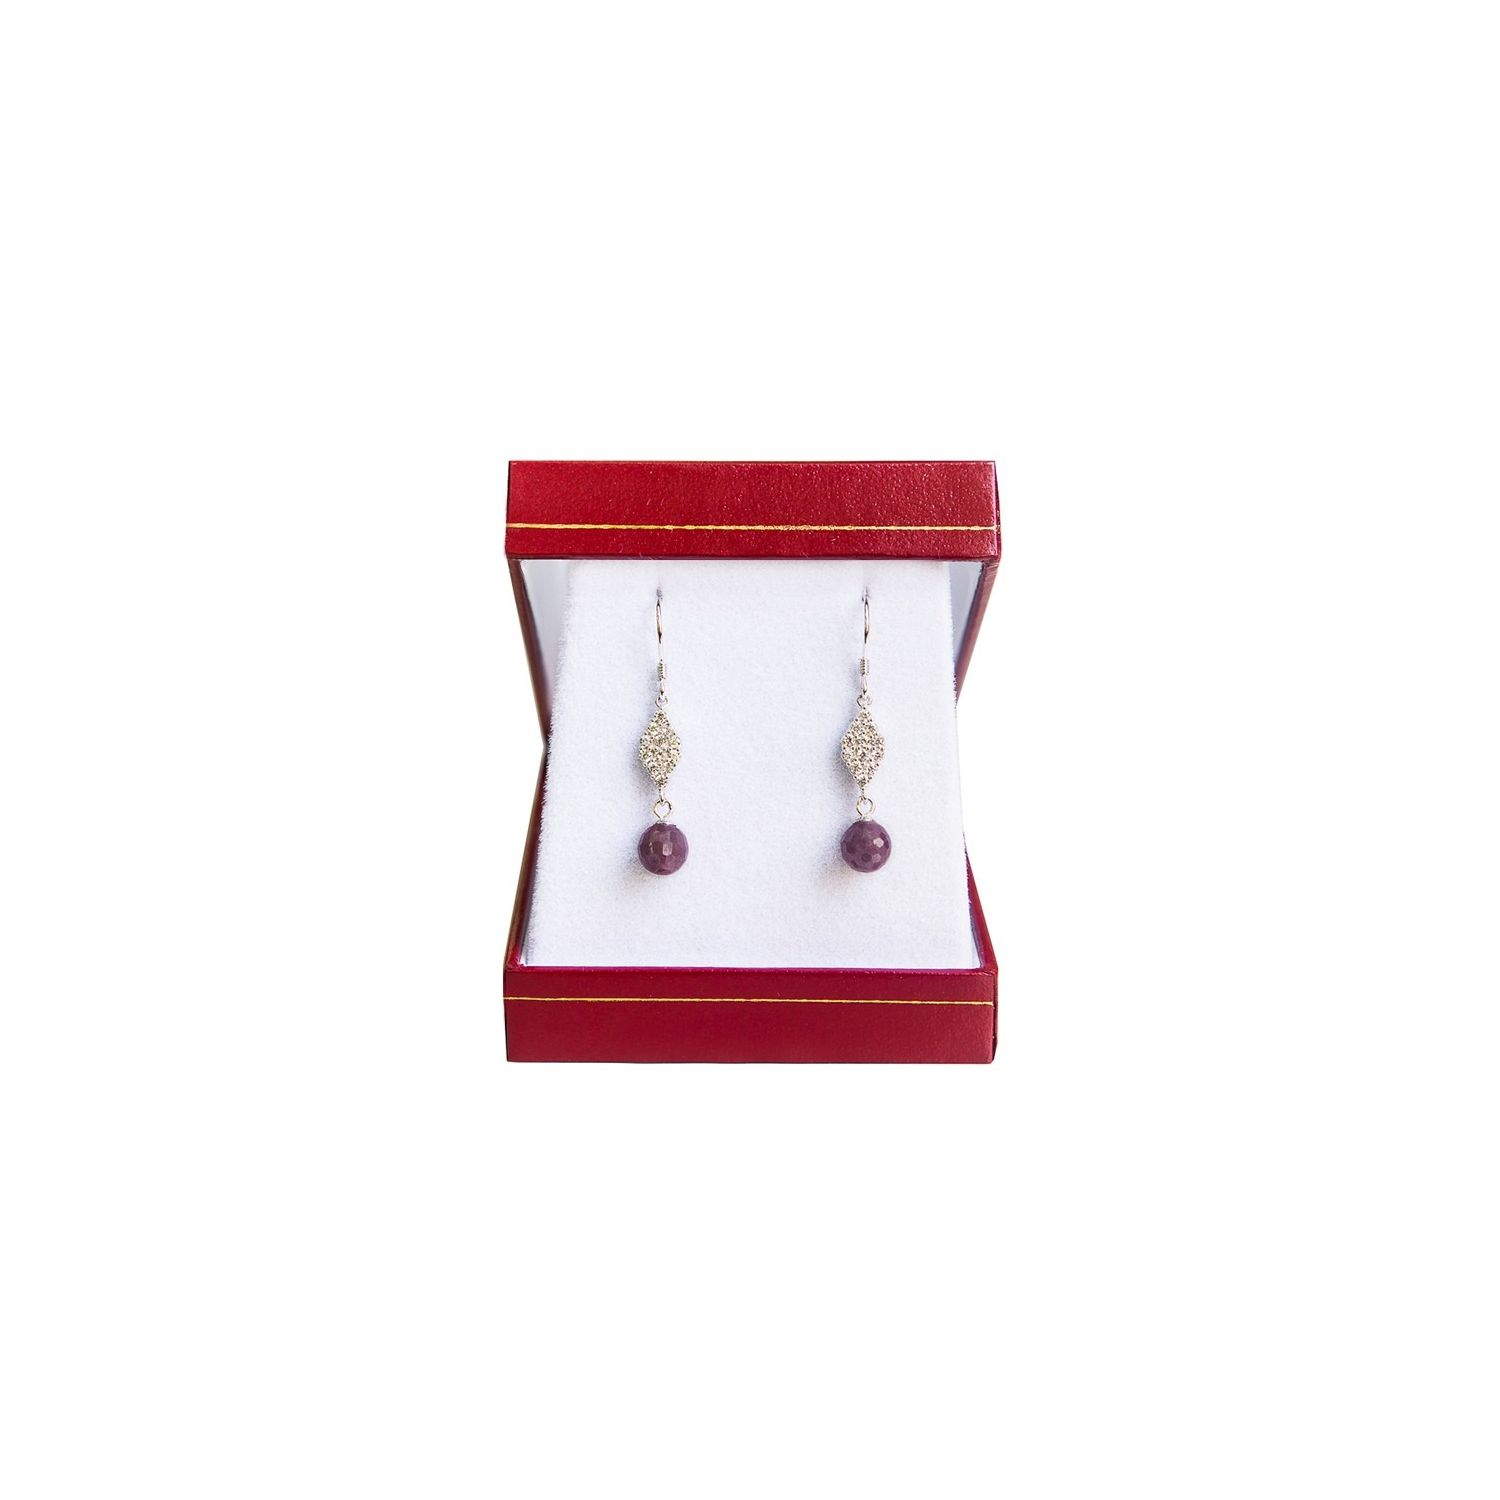 Ruby silver earrings